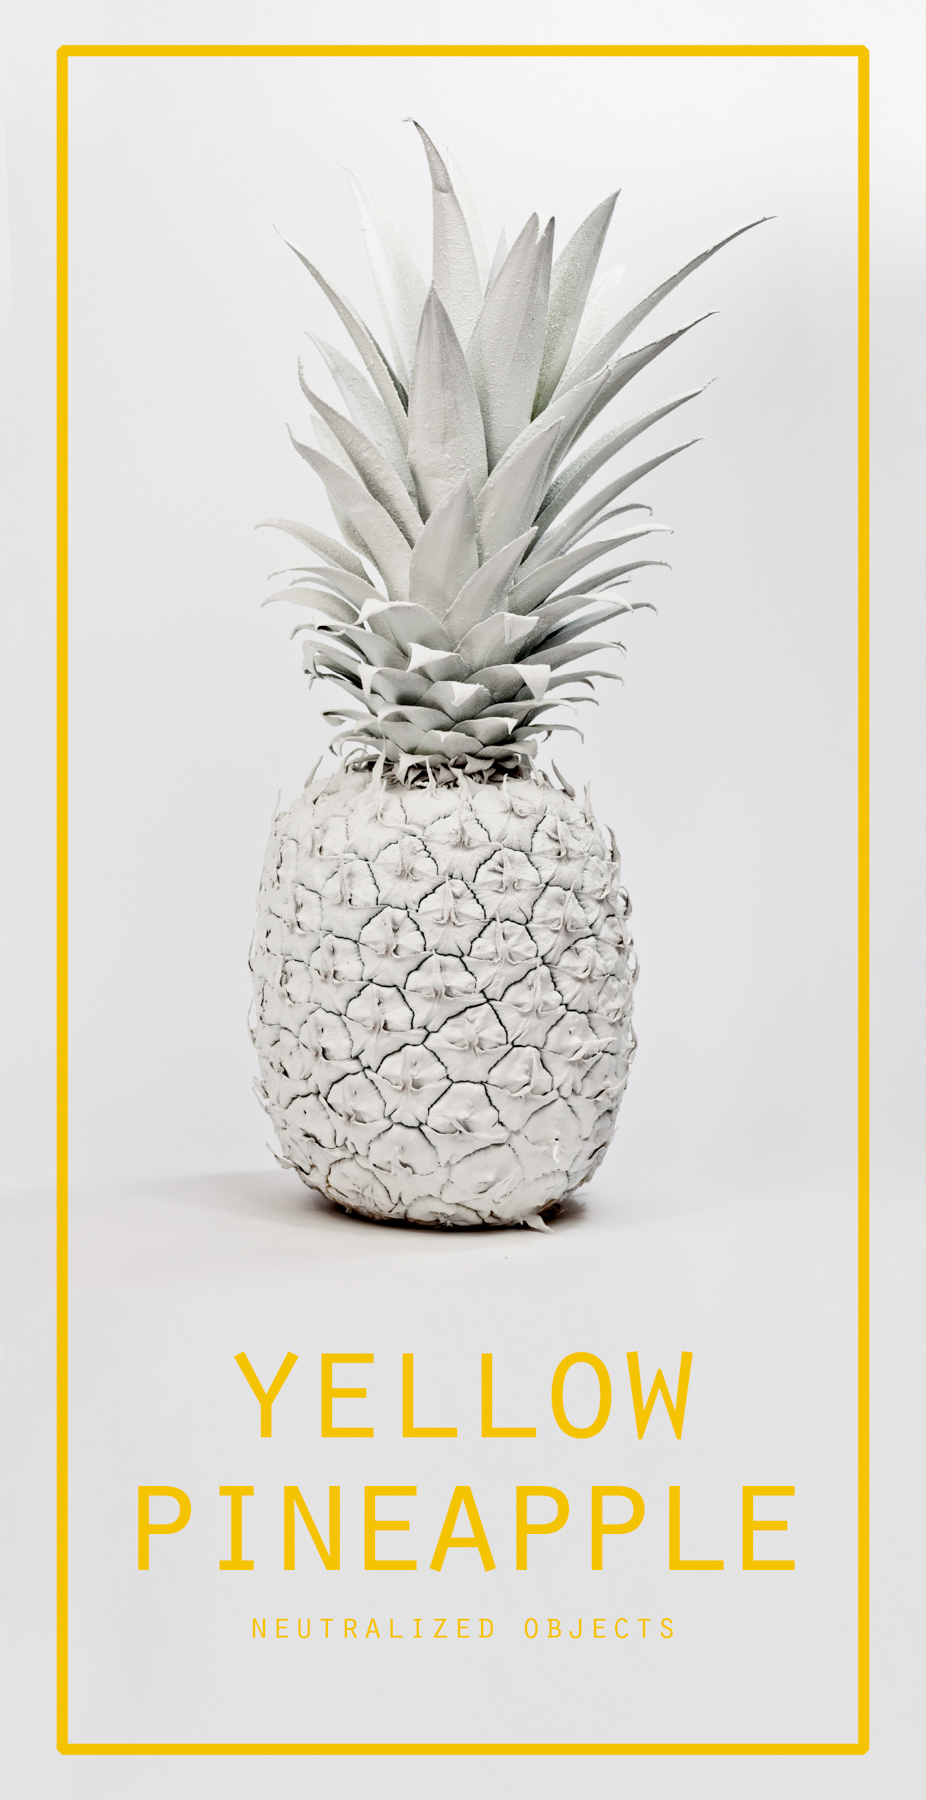 YELLOW PINEAPPLE | NEUTRALIZED OBJECTS